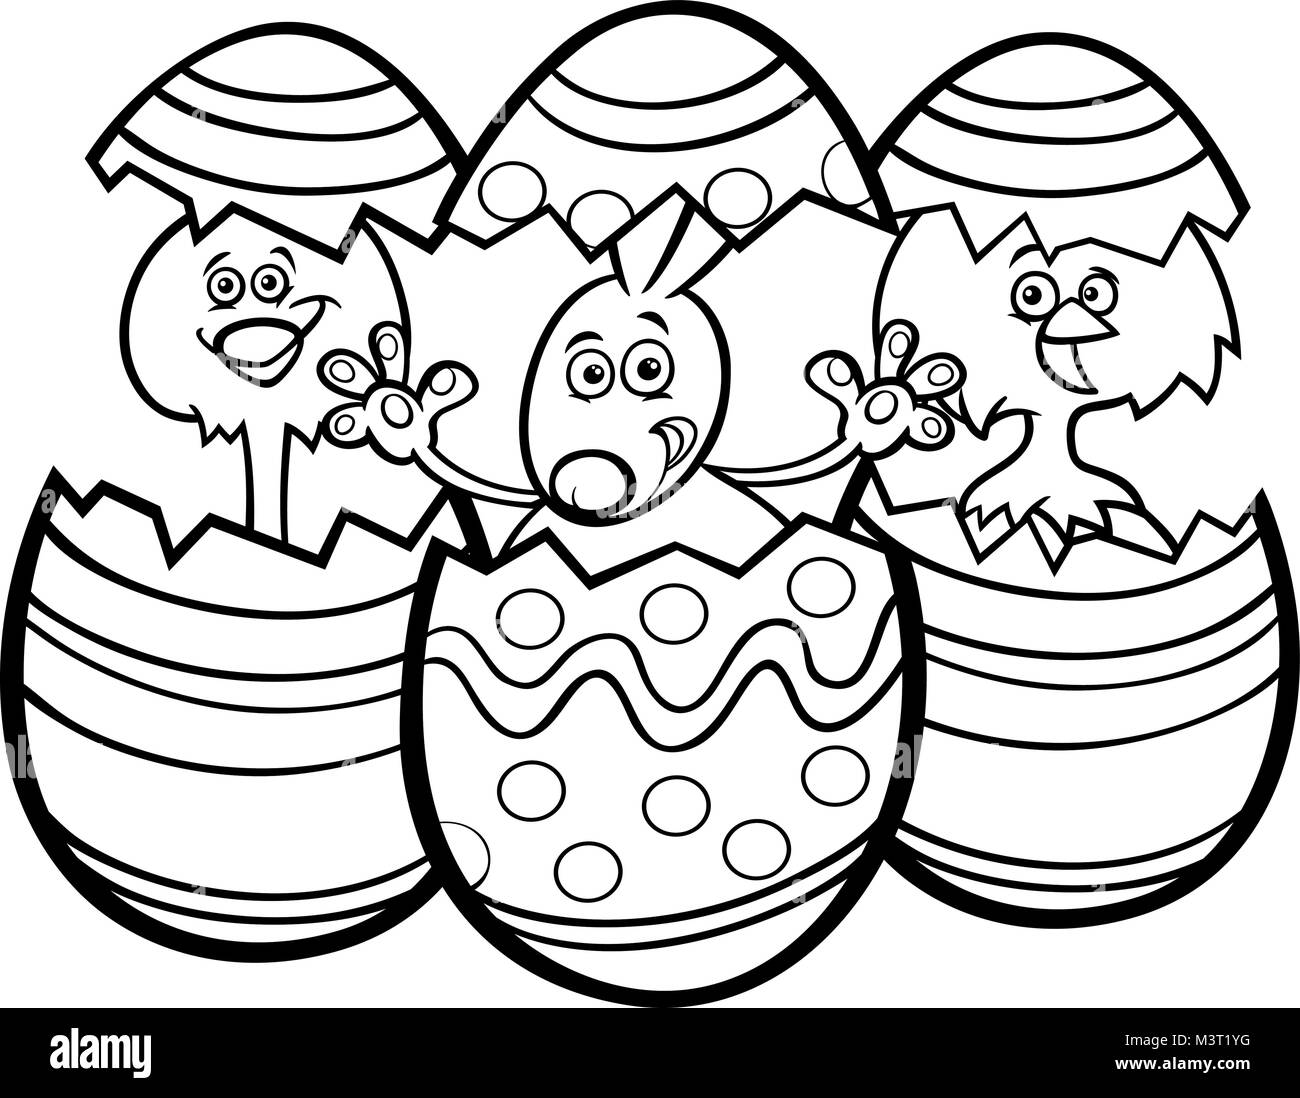 Easter Bunny Clip Art Black and White